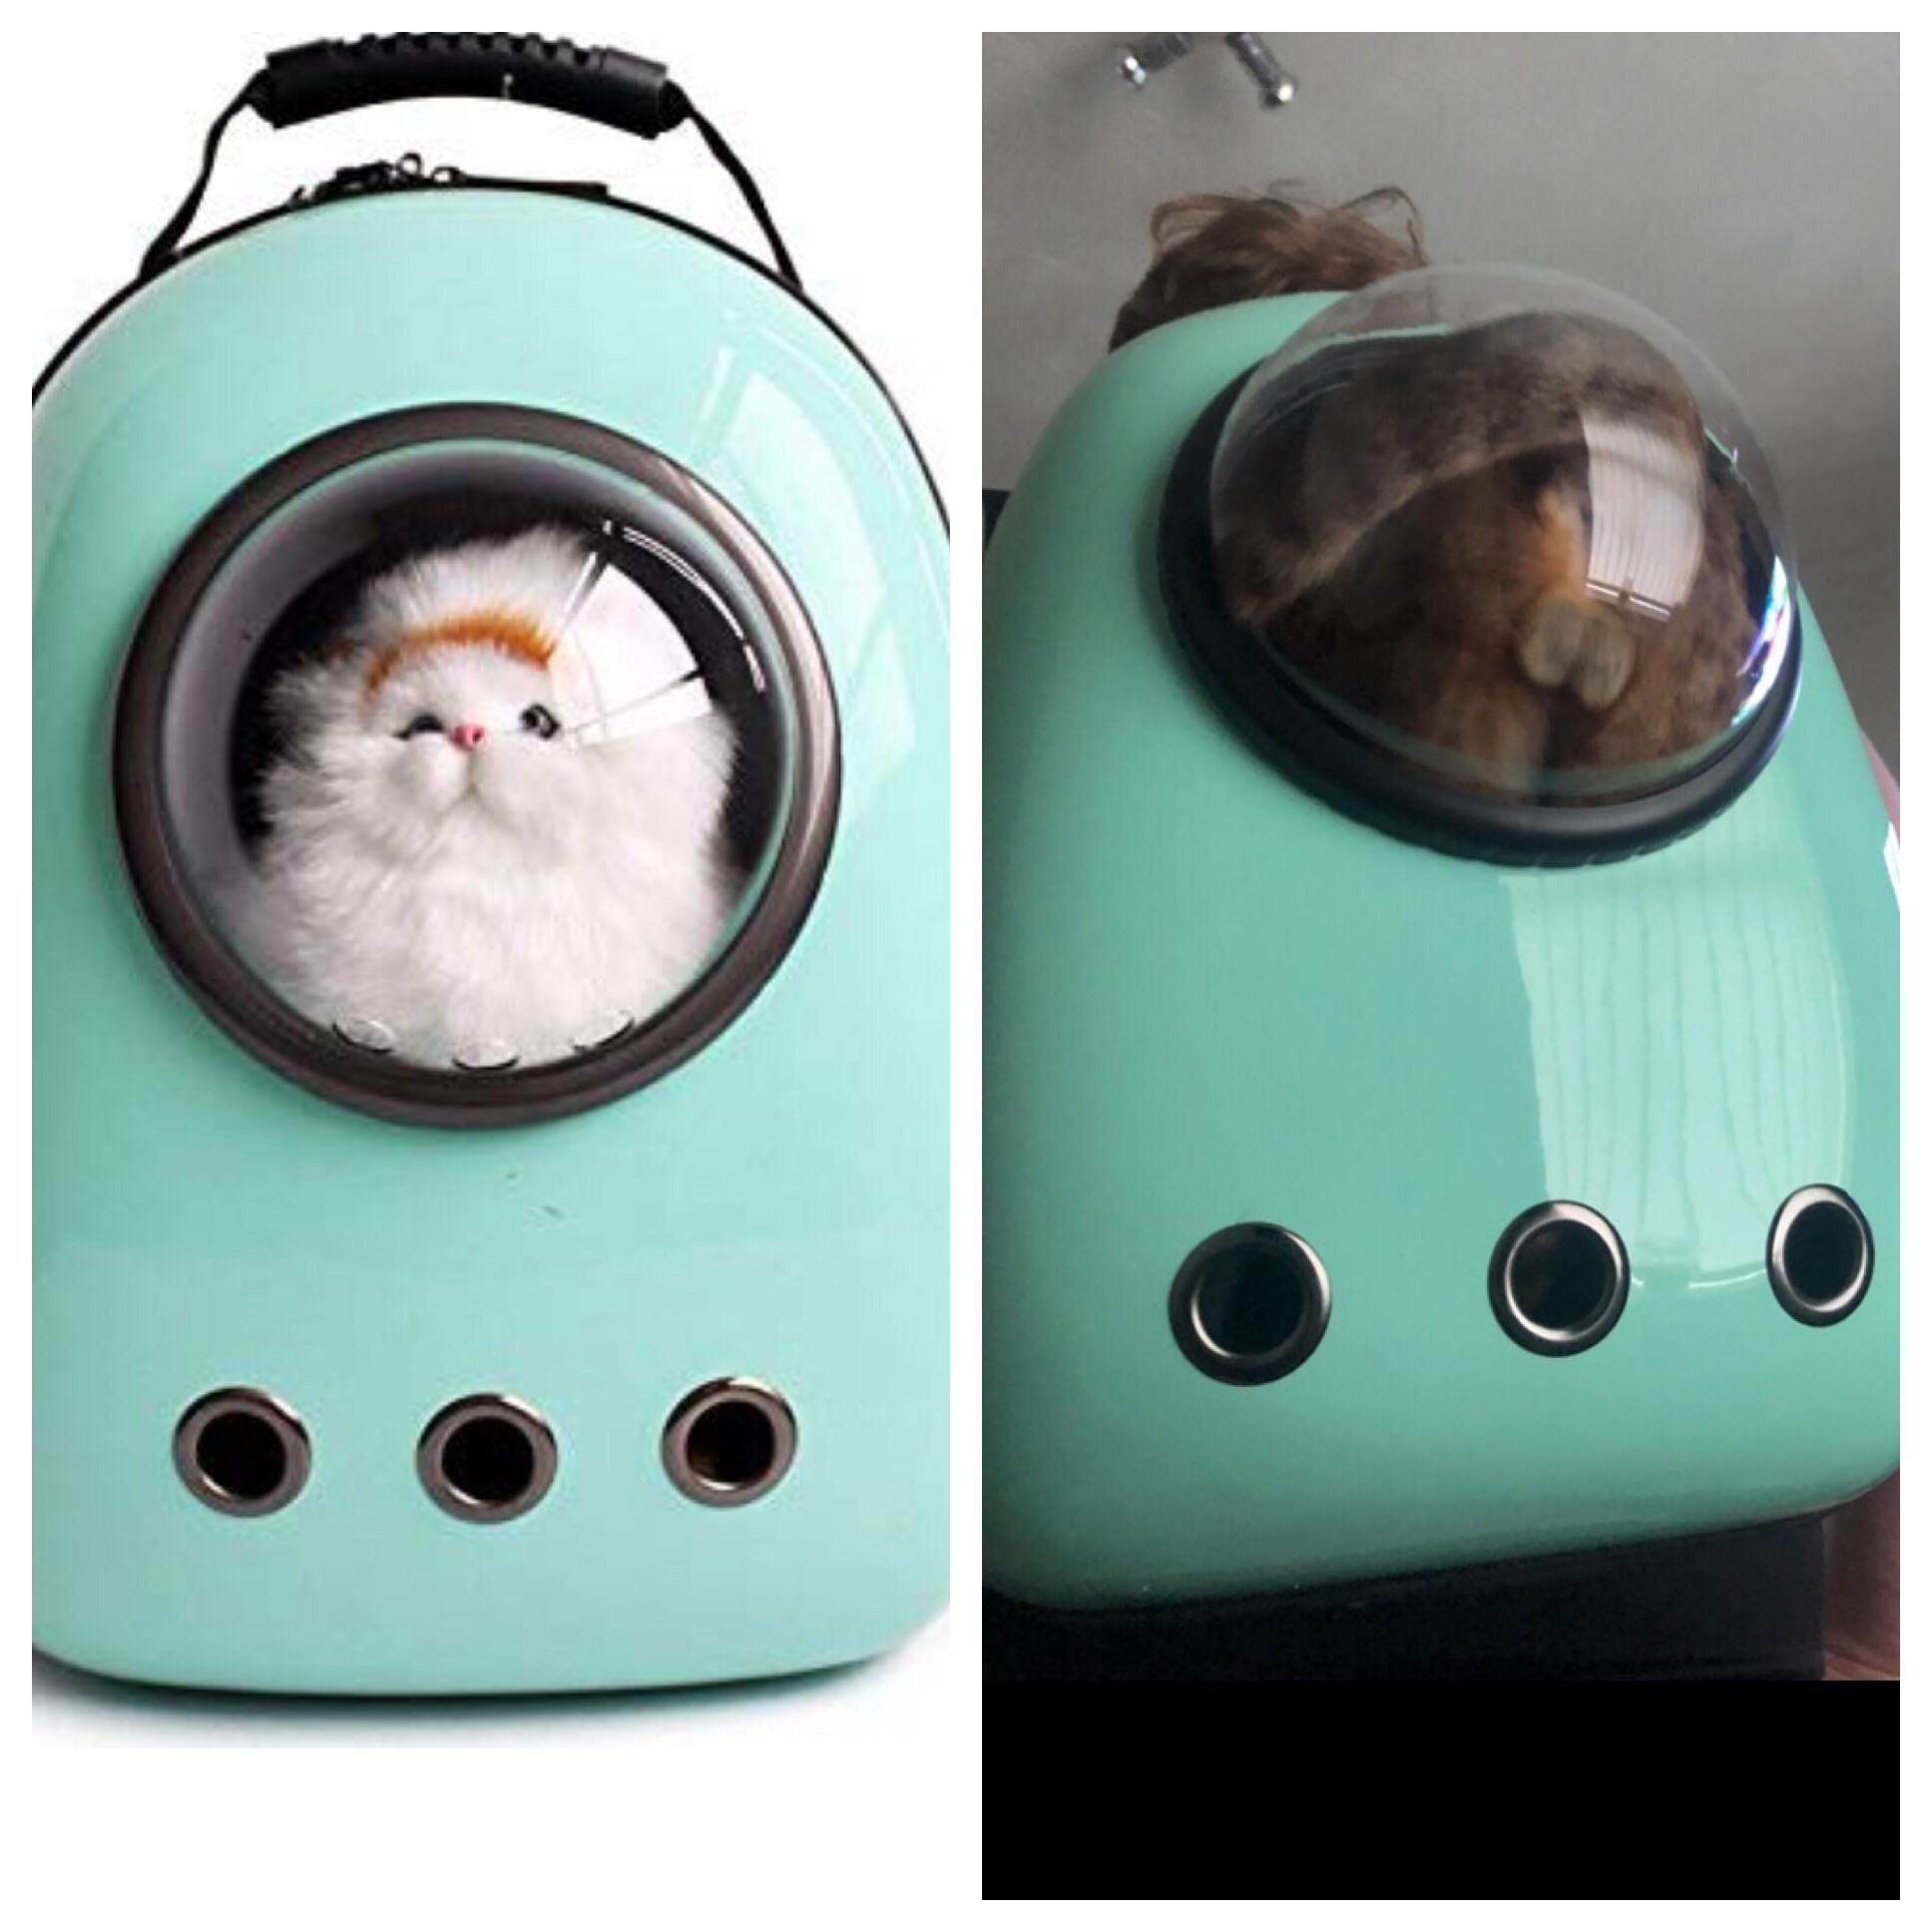 Expectation vs reality - cat edition.